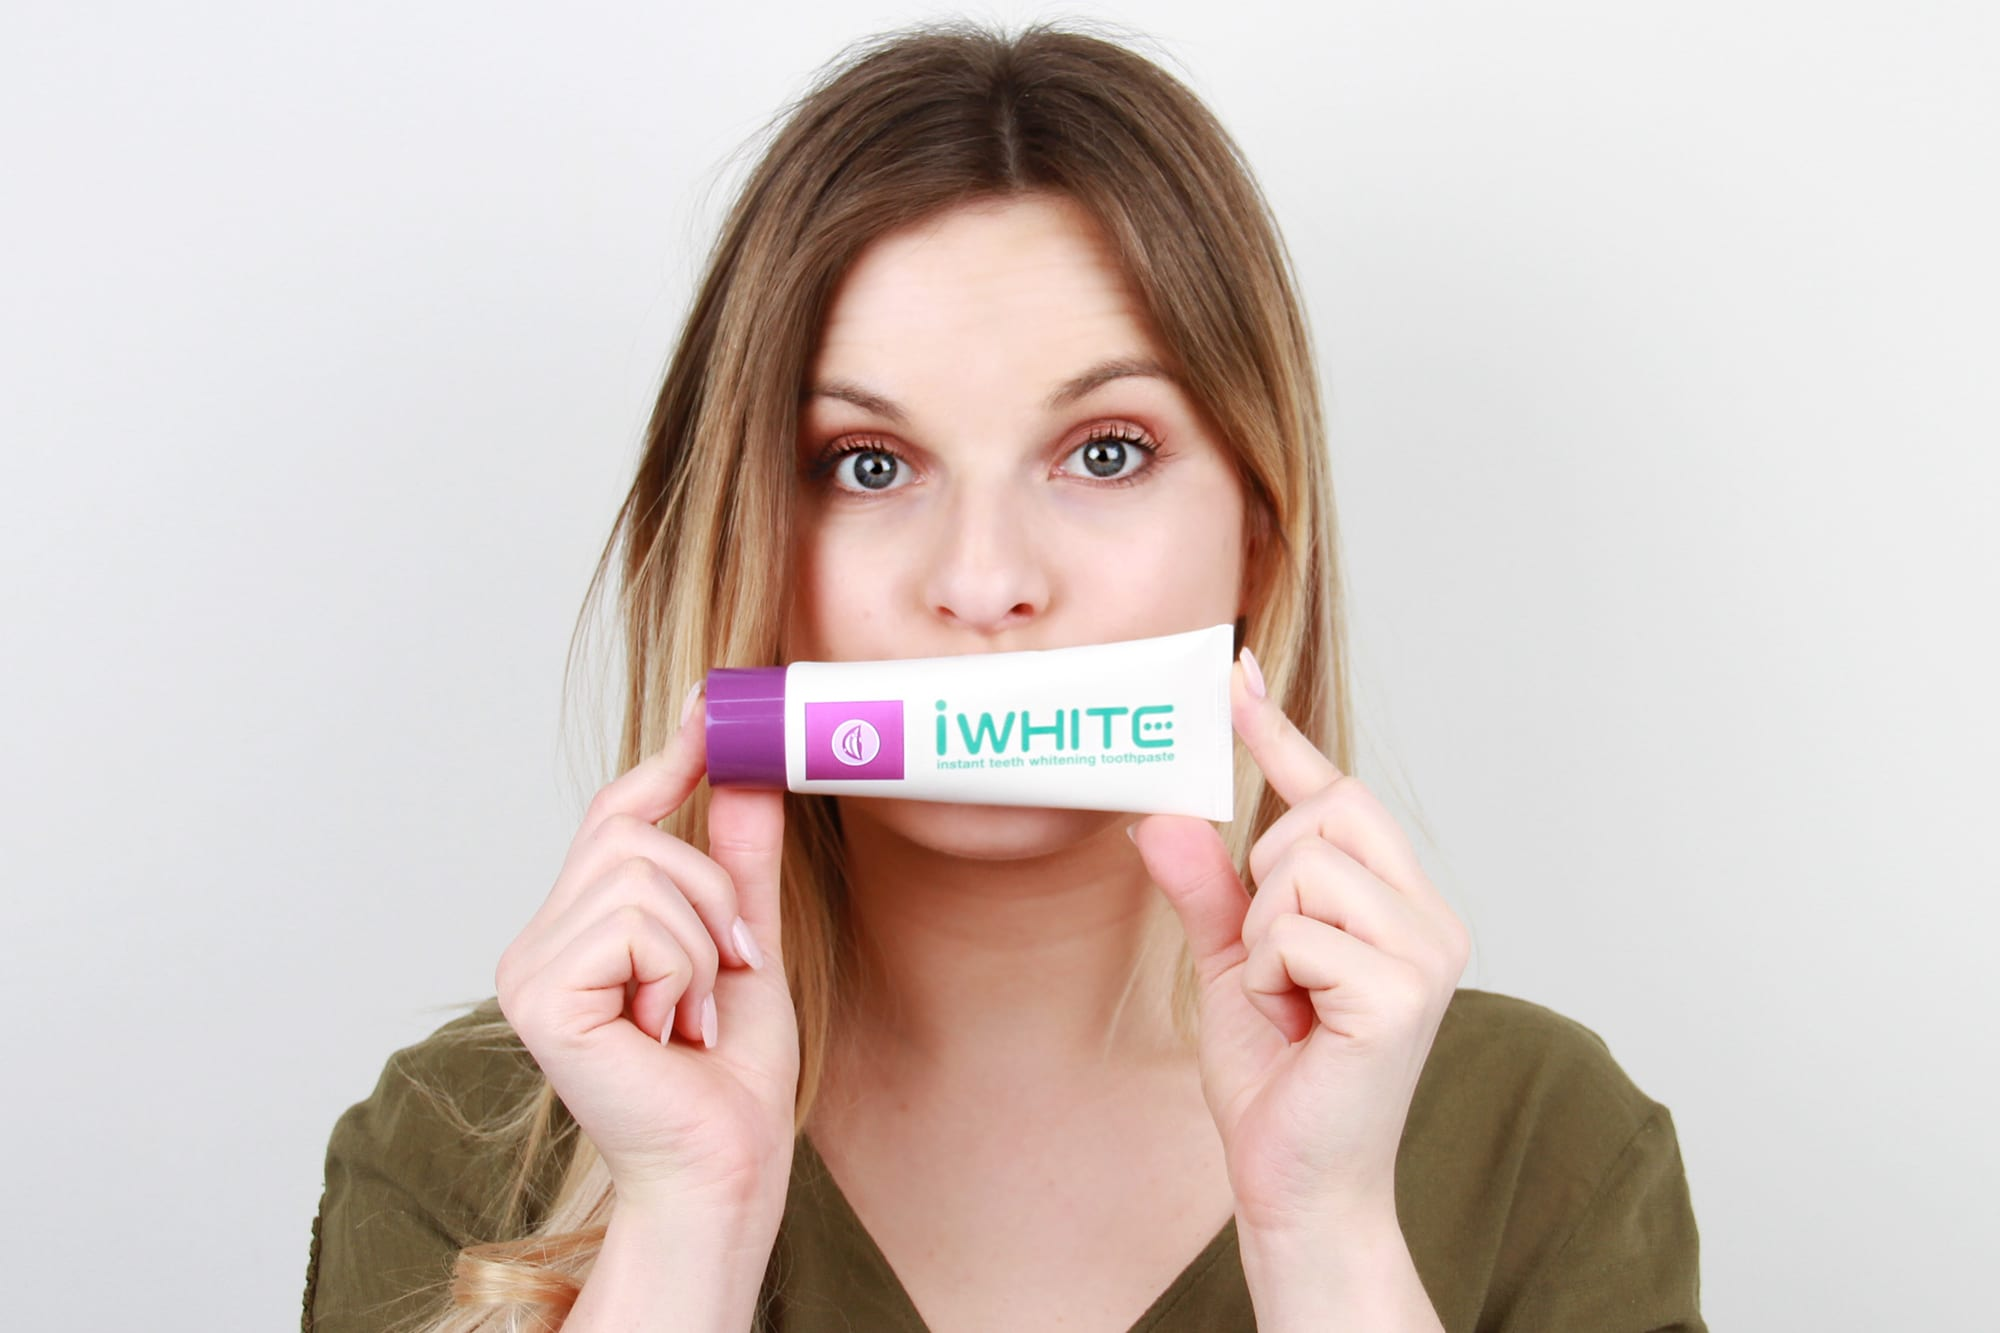 Extreme Beauty Testing: Whitening Toothpaste